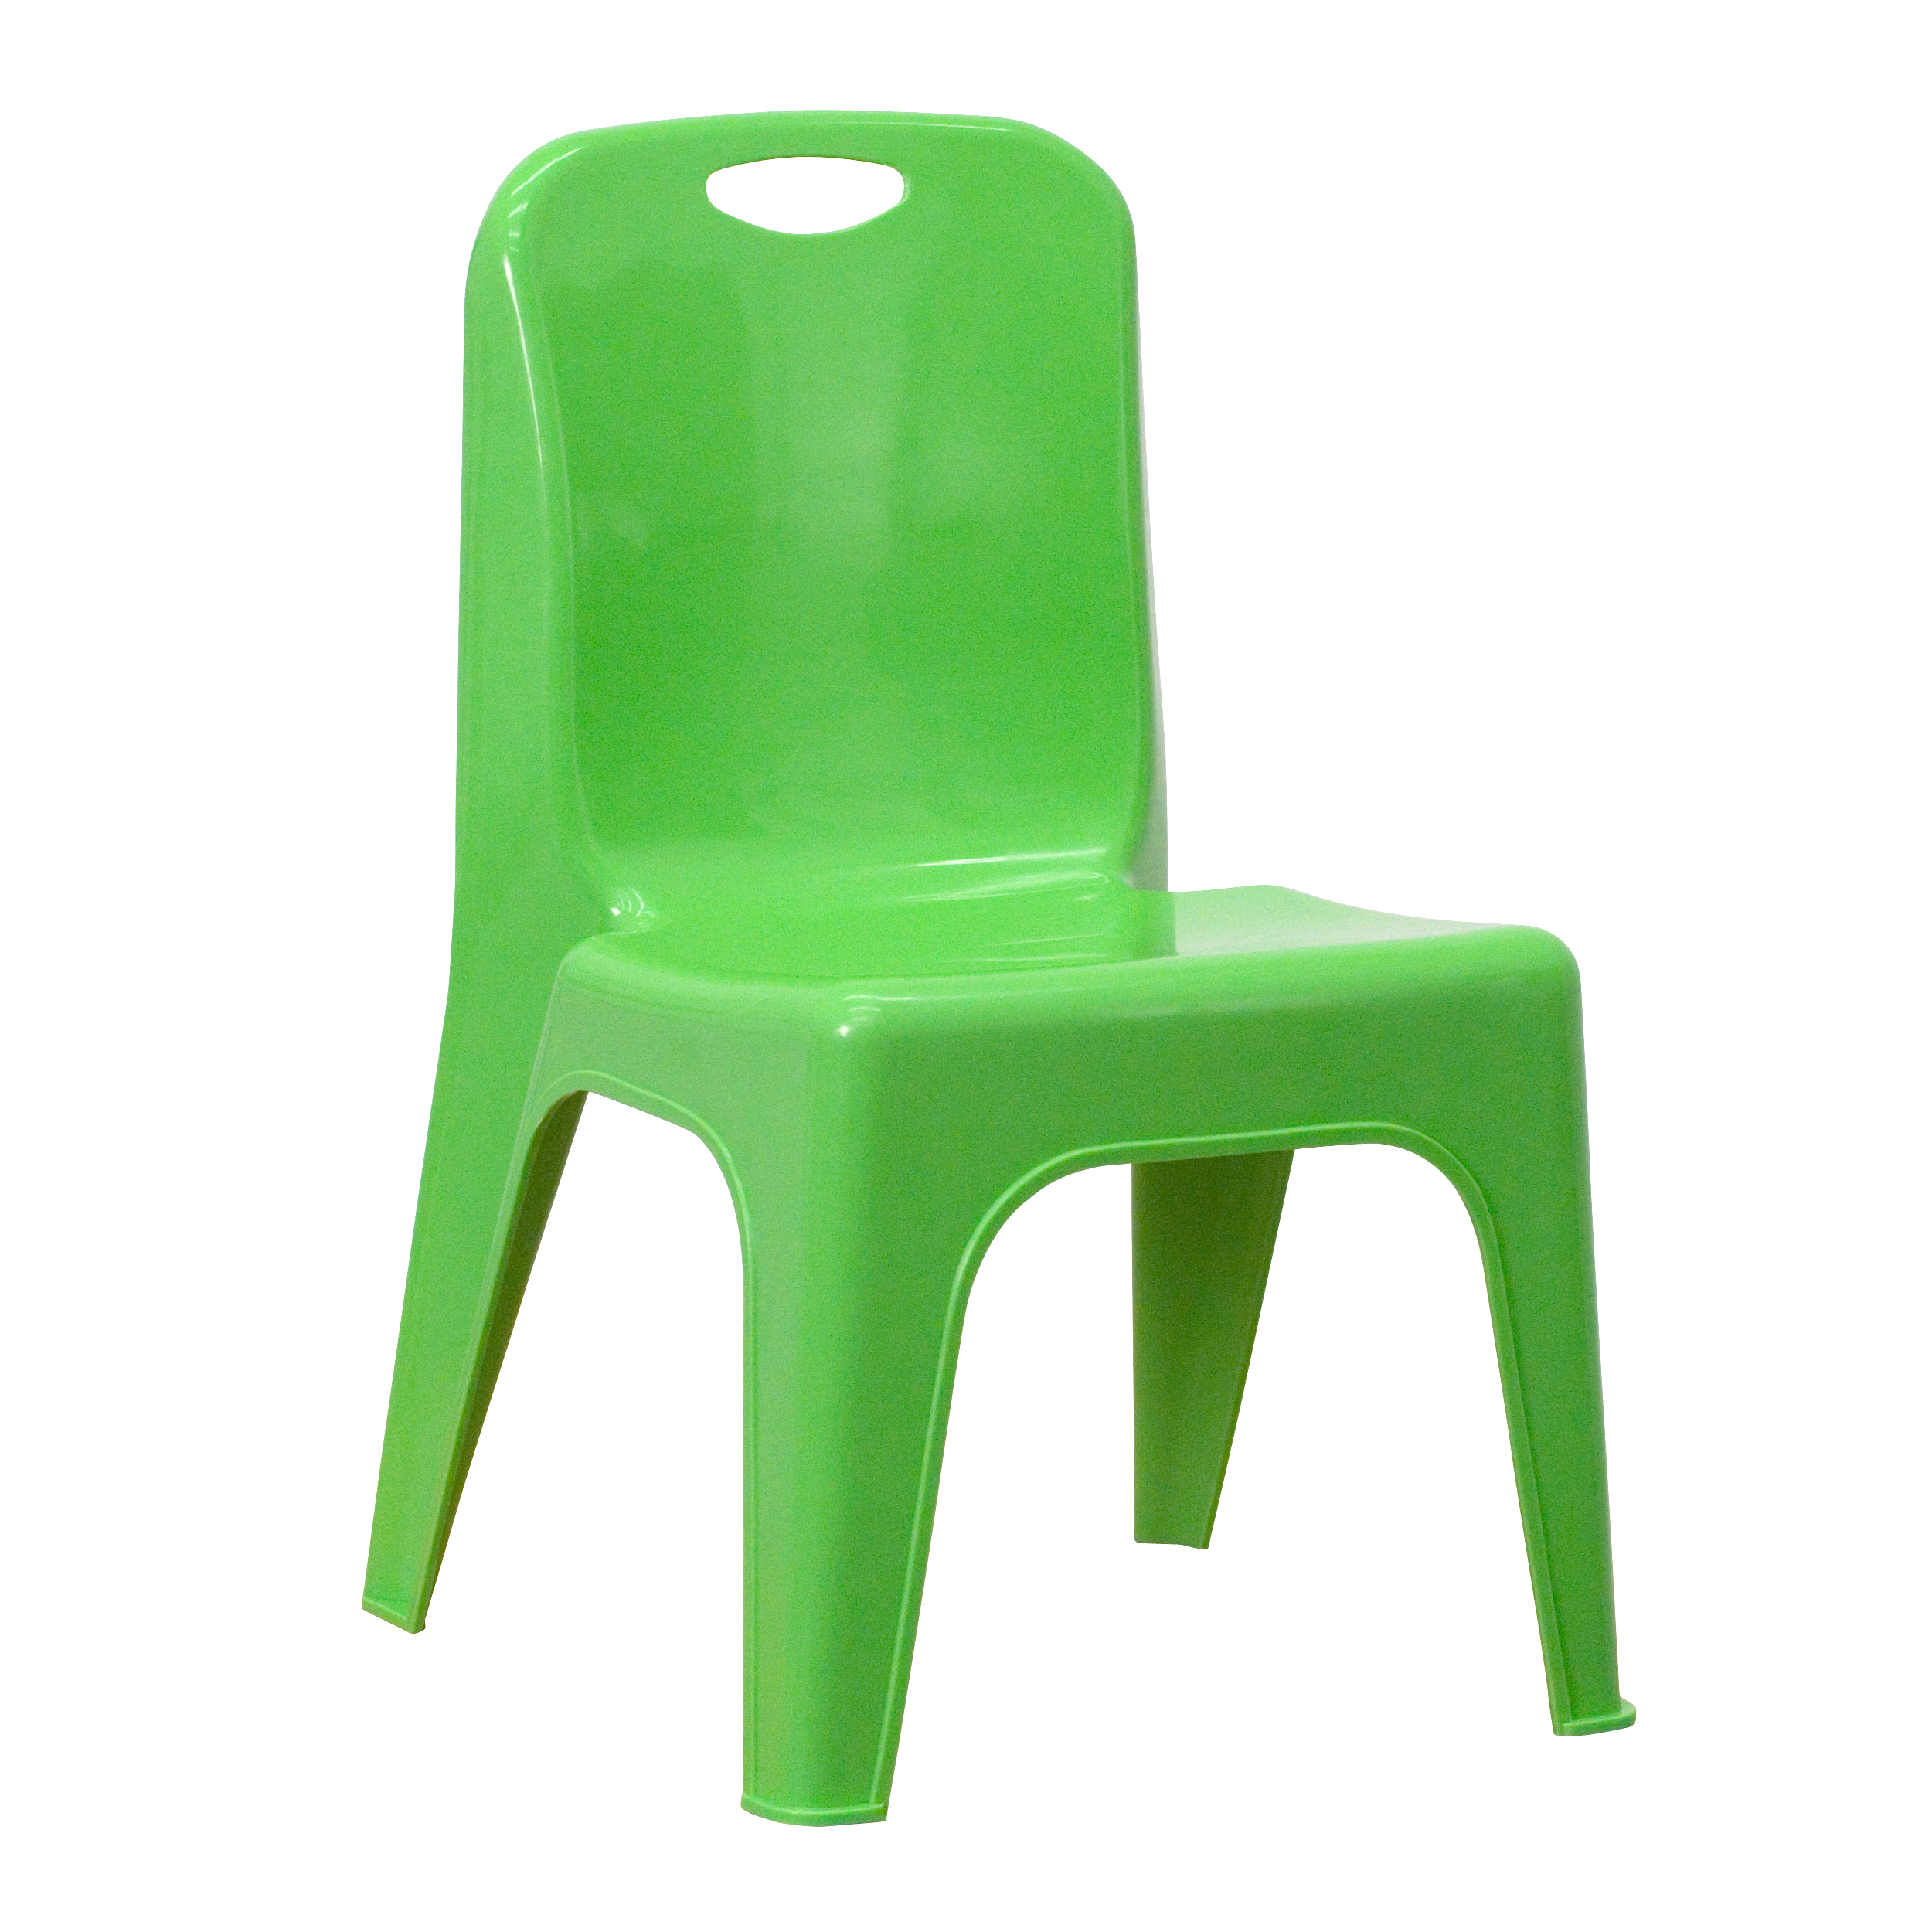 Plastic Stacking Chairs Flash Plastic Stackable School Chair With Carrying Handle